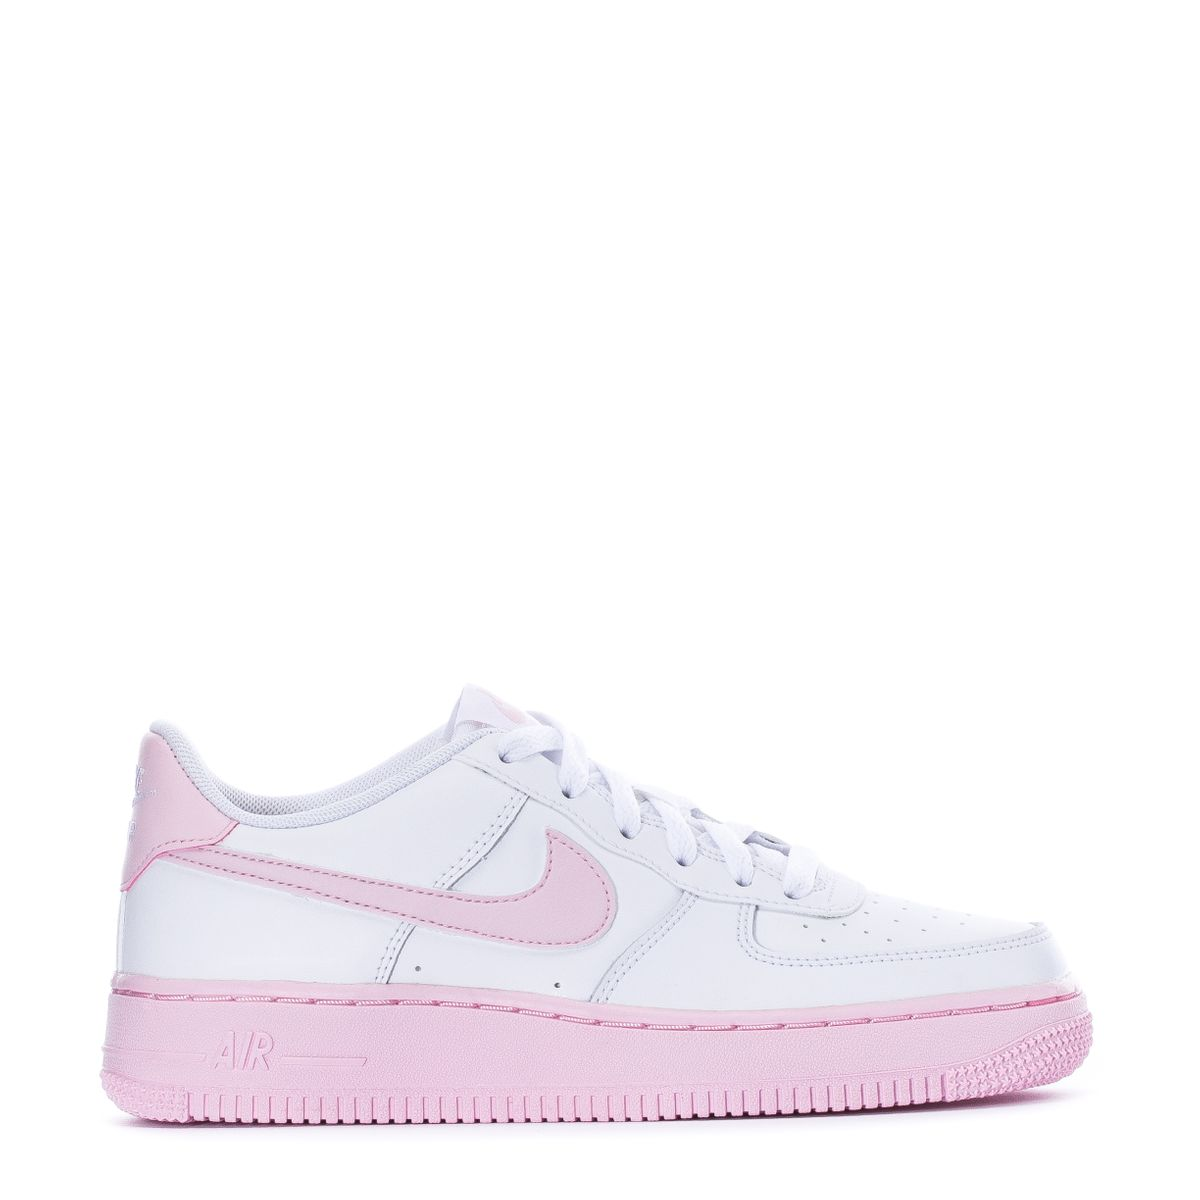 NIKE AIR FORCE 1 LV8 1空军一号白粉大童鞋 $79.99